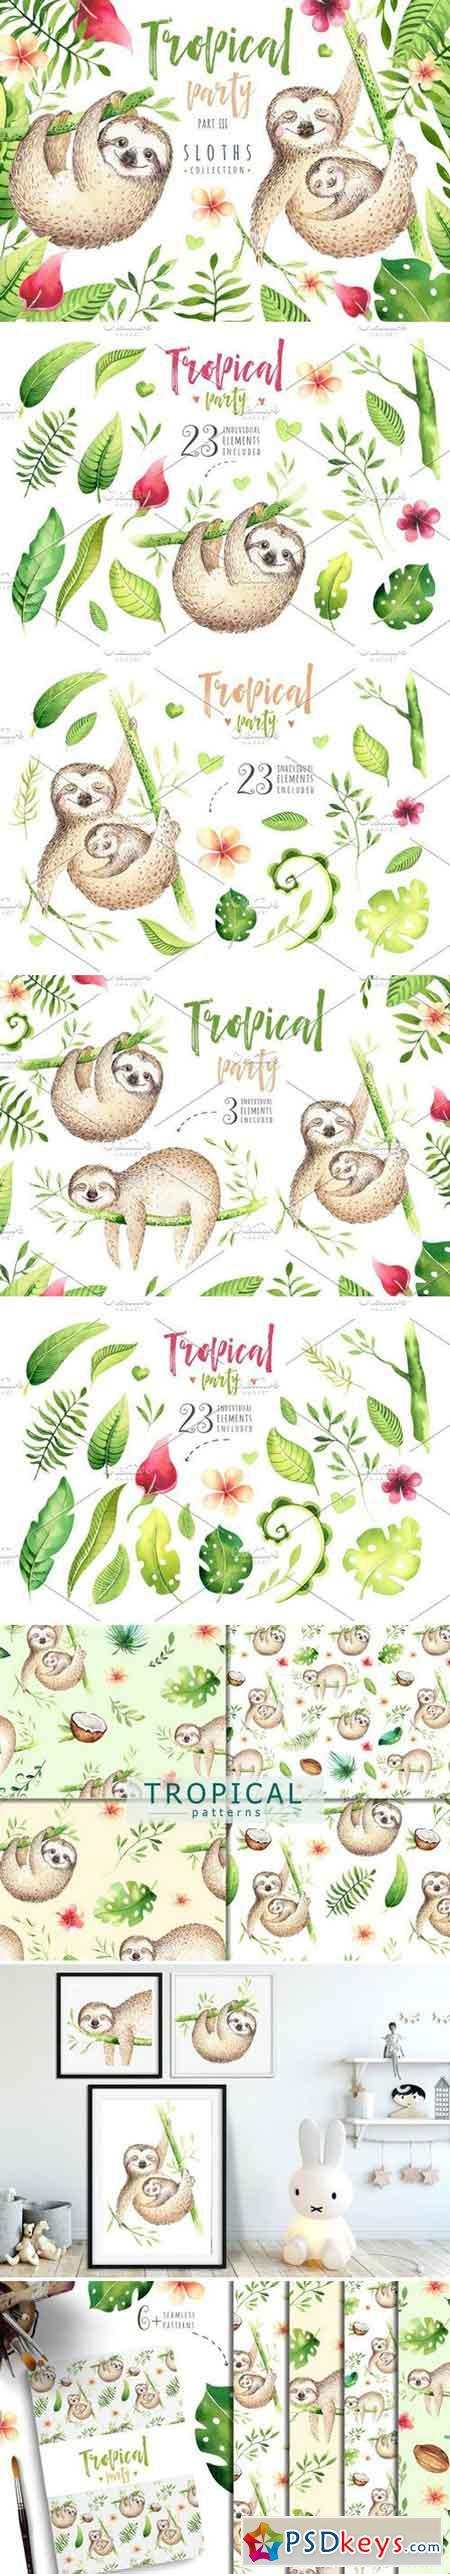 Tropical party III Sloth collection 1472257